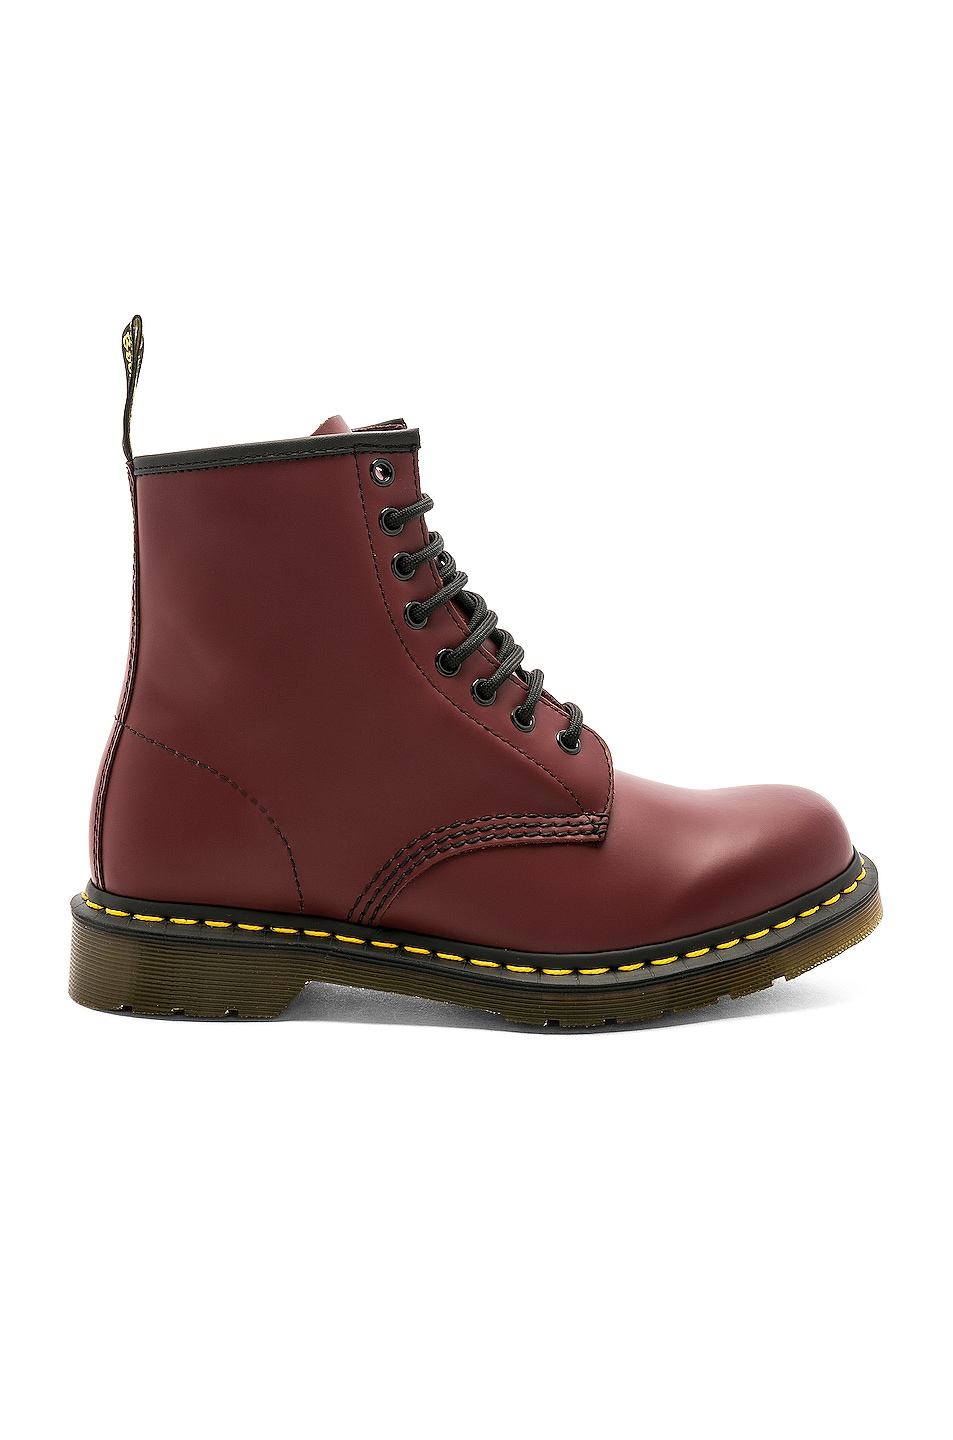 Image 1 of Dr. Martens 1460 8 Eye Boot in Cherry Red